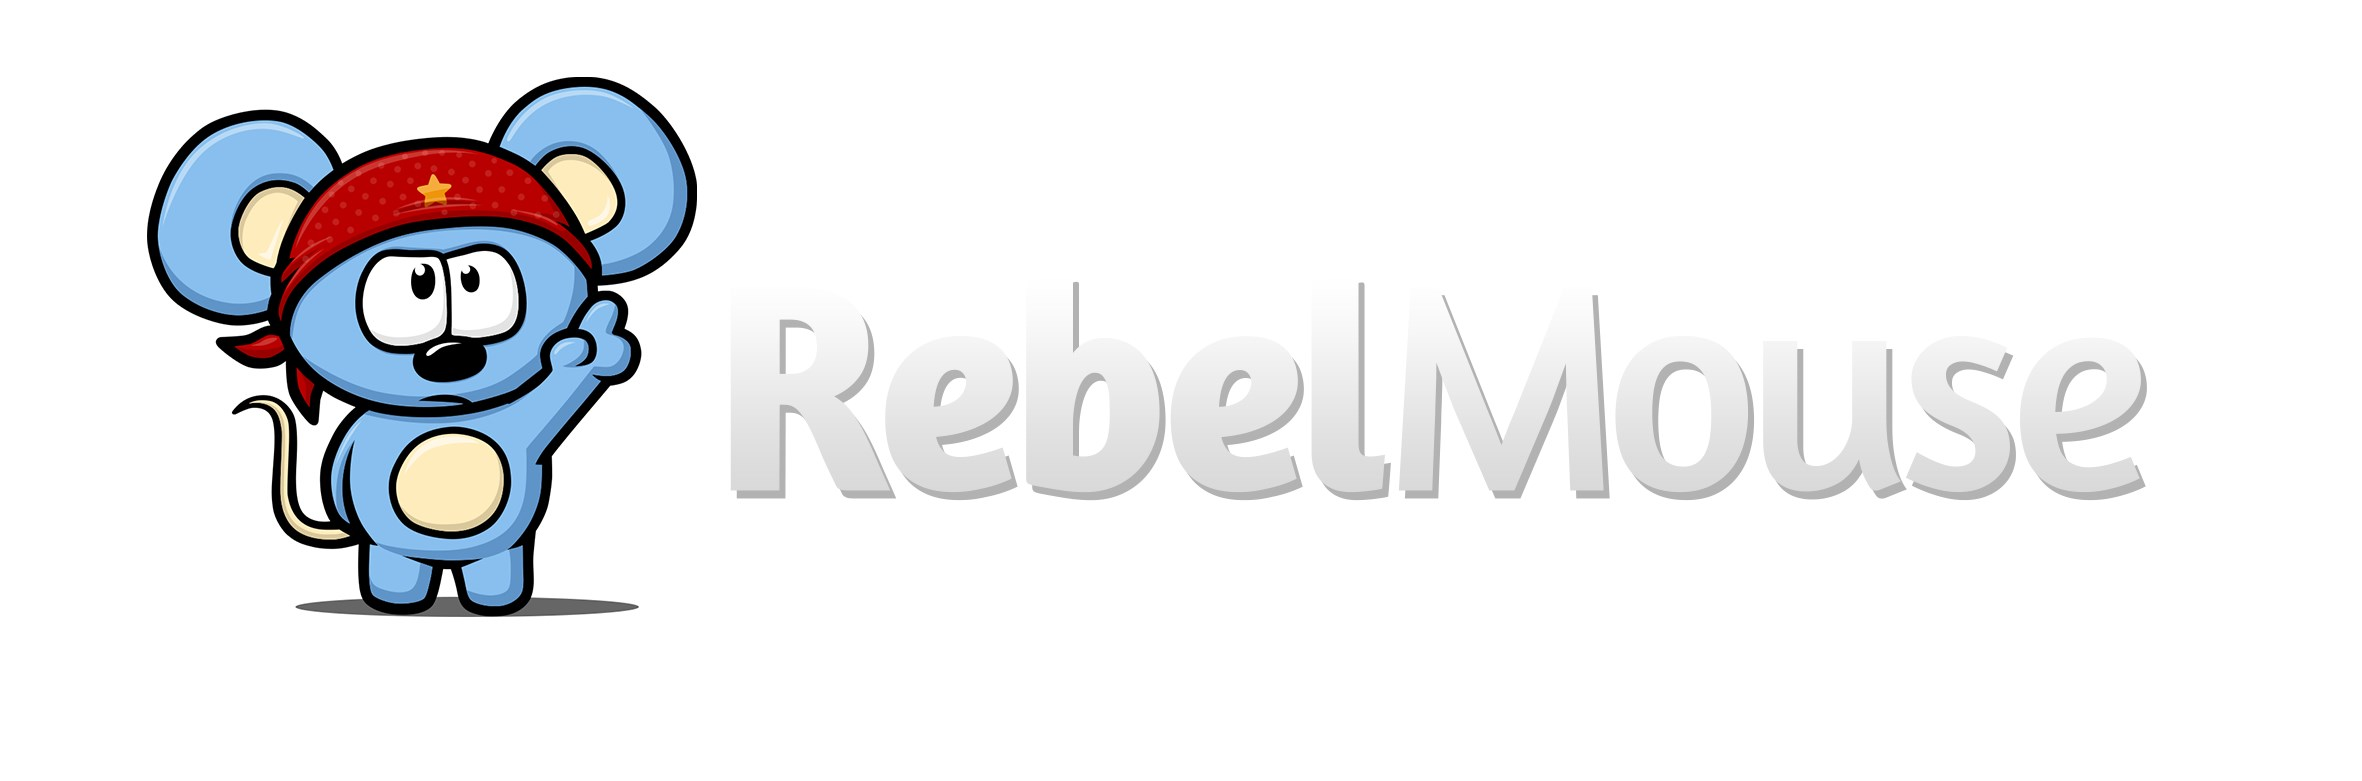 rebel mouse social aggregator